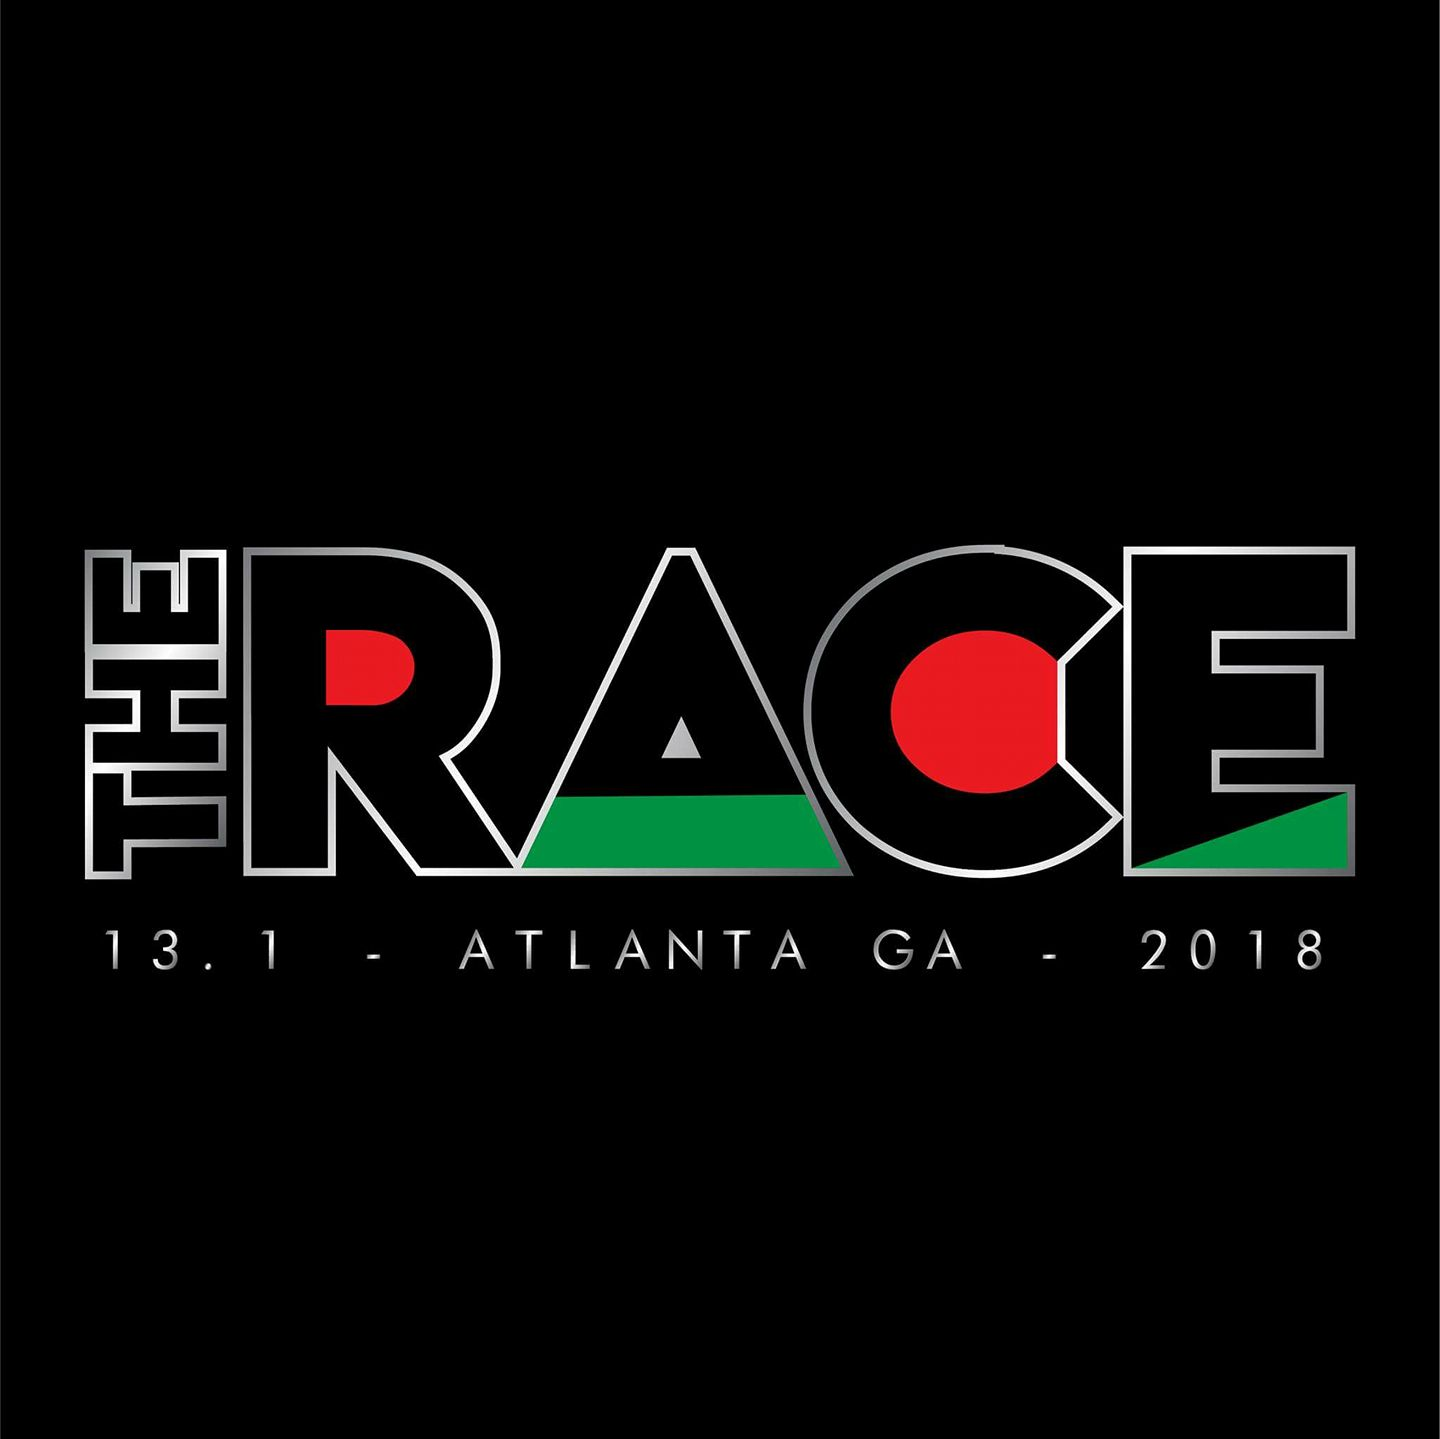 Have you registered for The Race? Join Bain and The Unity Collective in Atlanta this October.